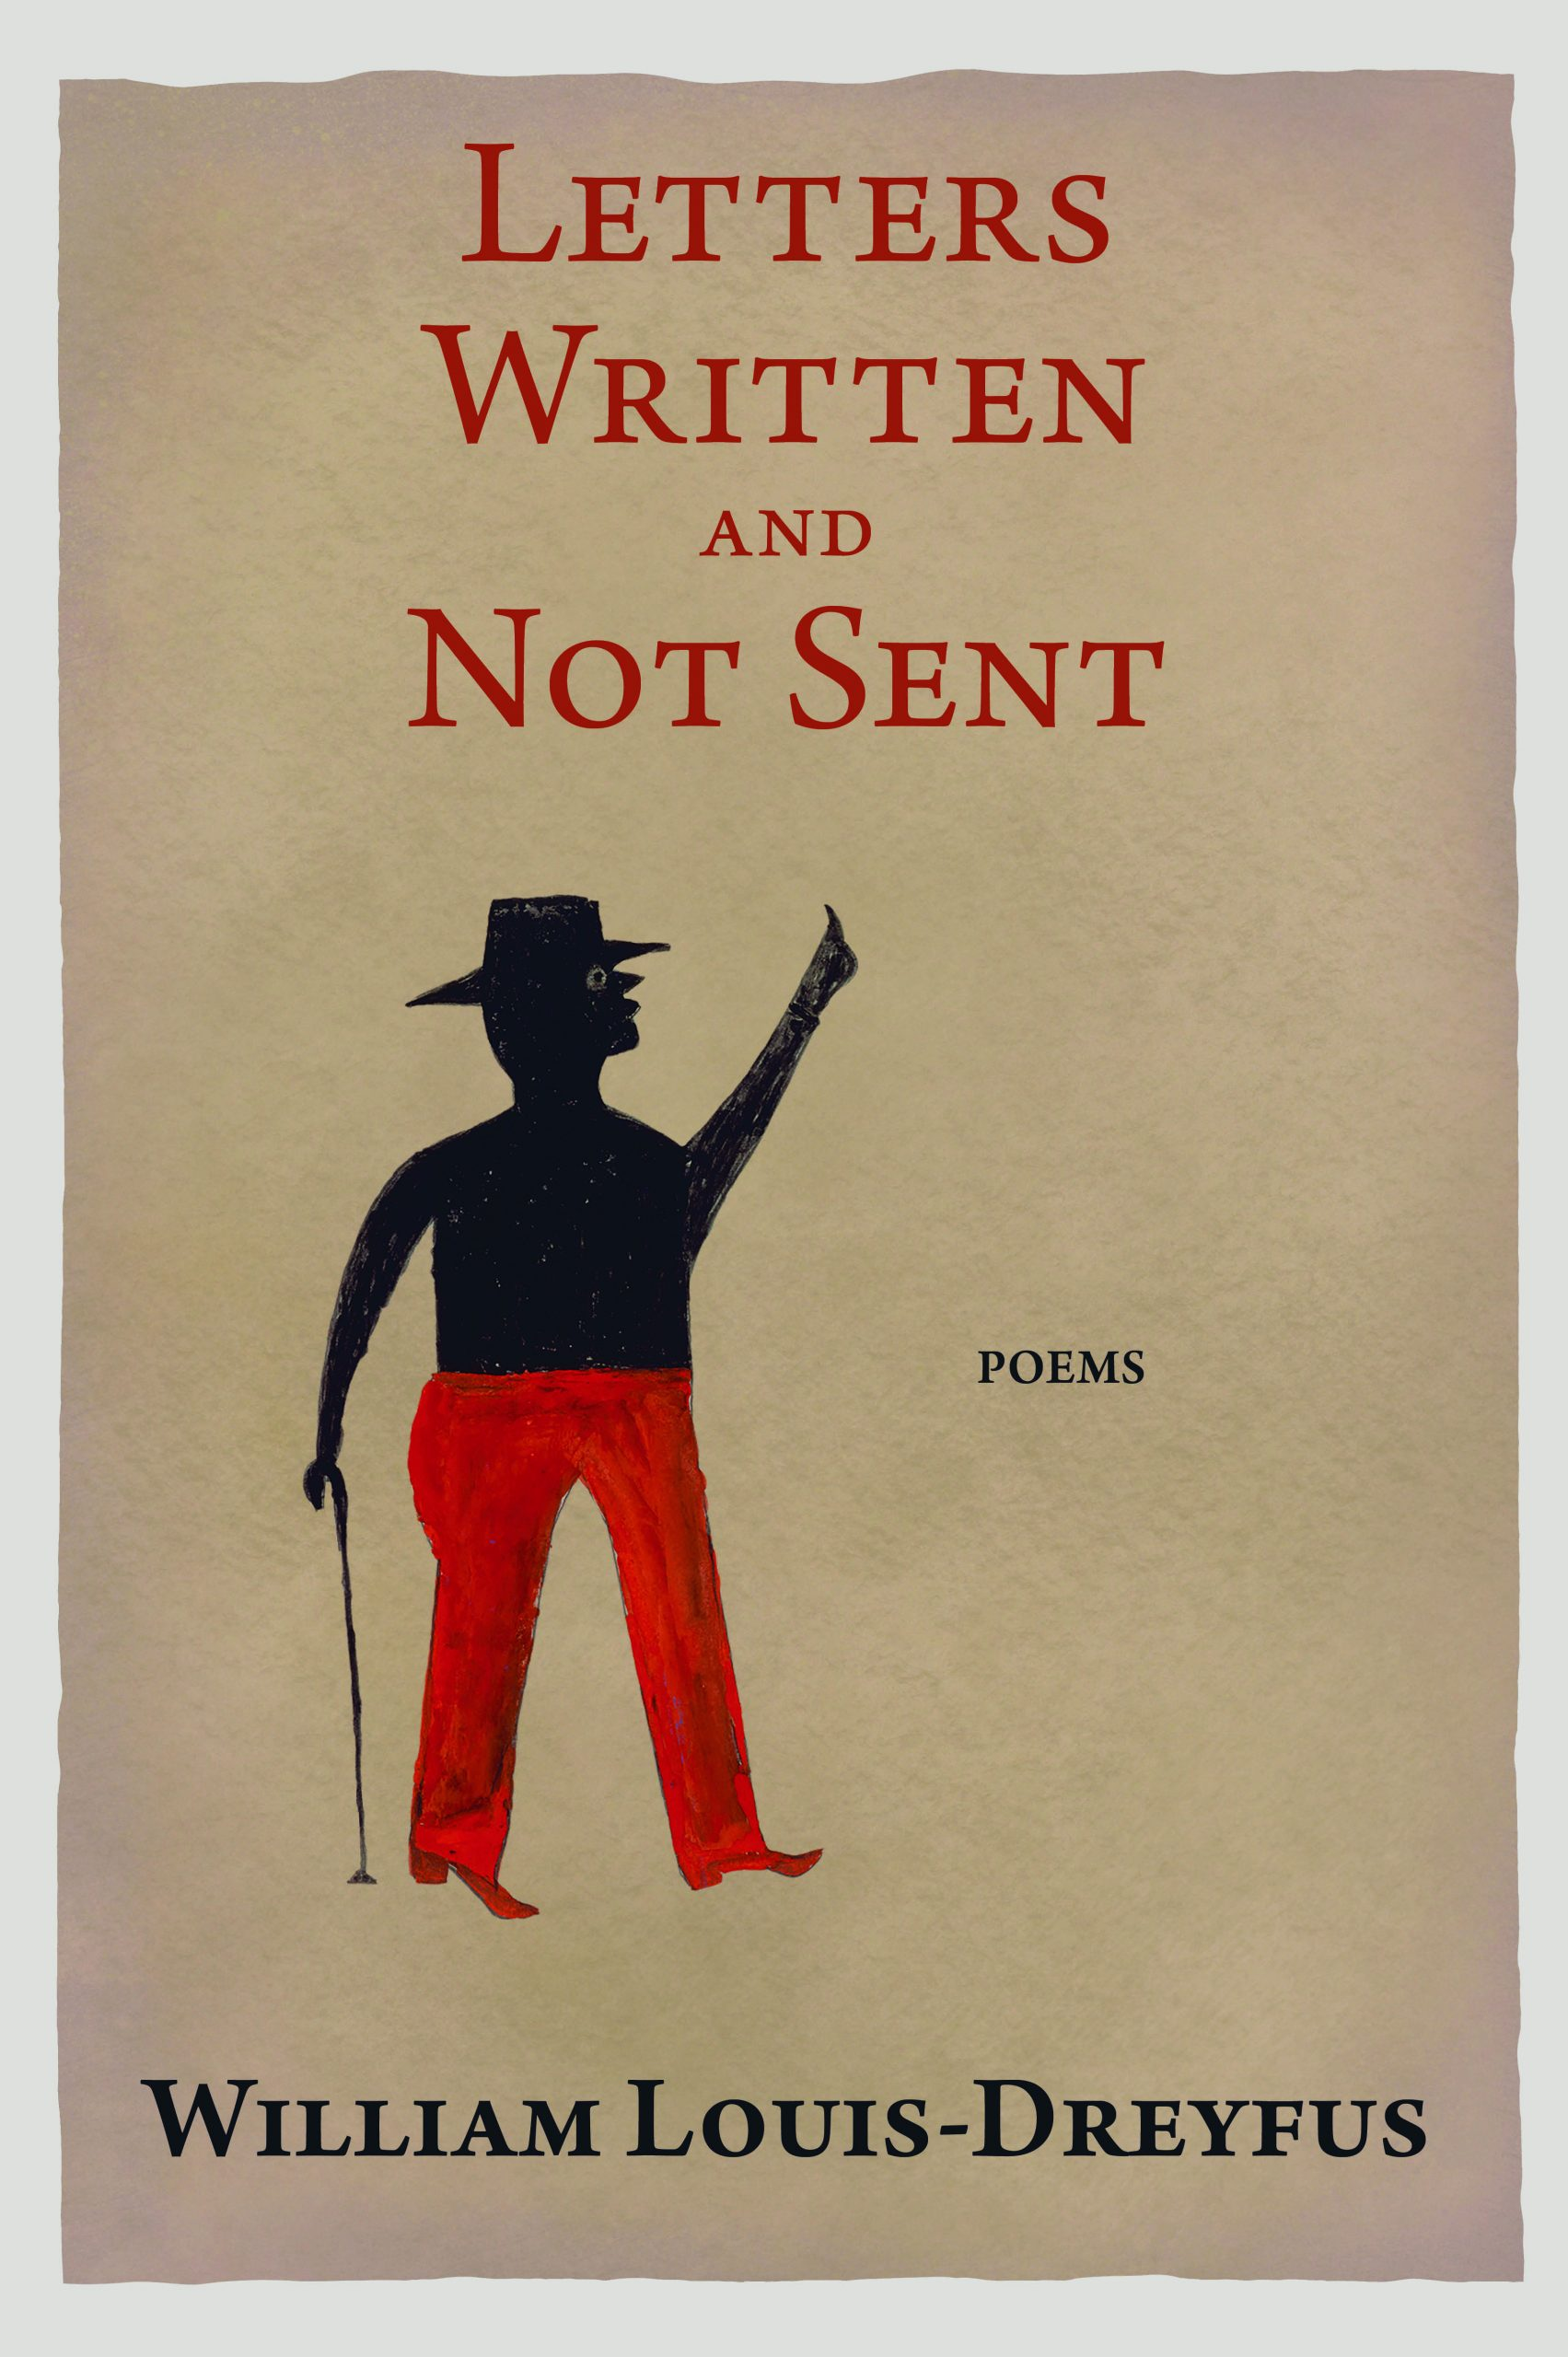 A design of parchment paper and a man carrying a cane with red pants on towards the bottom left and red script that reads Letters Written and Not Sent Poems by William Louis Dreyfus.